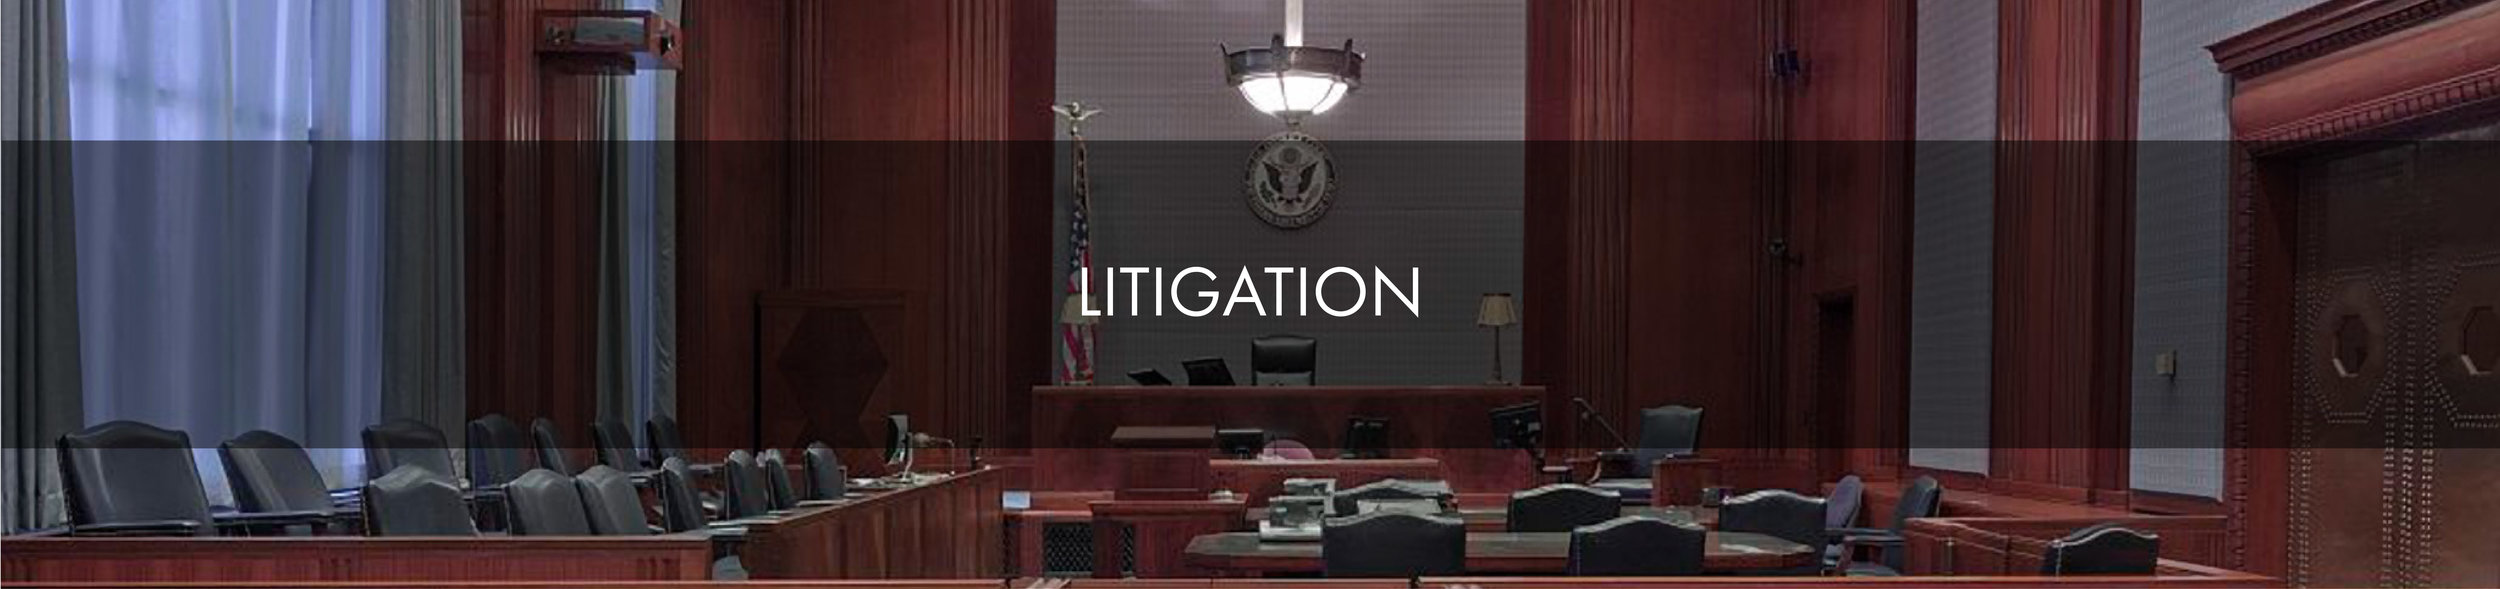 denver-litigation-lawyer.jpg